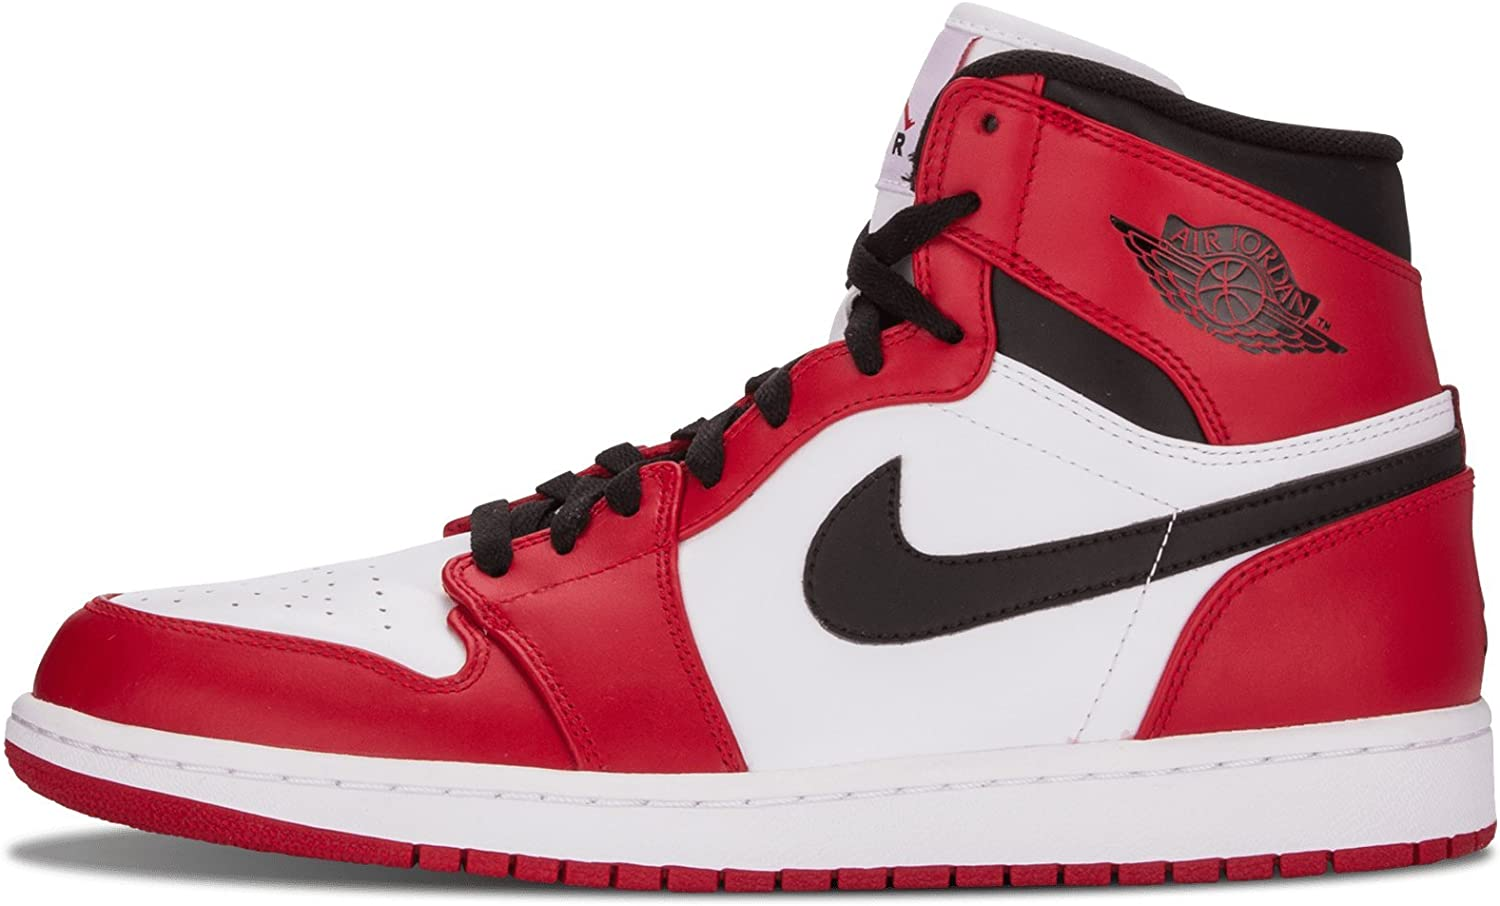 Mal funcionamiento Ninguna Cívico  Amazon.com | Nike Mens Air Jordan 1 Retro High Chicago Leather Basketball  Shoes | Basketball